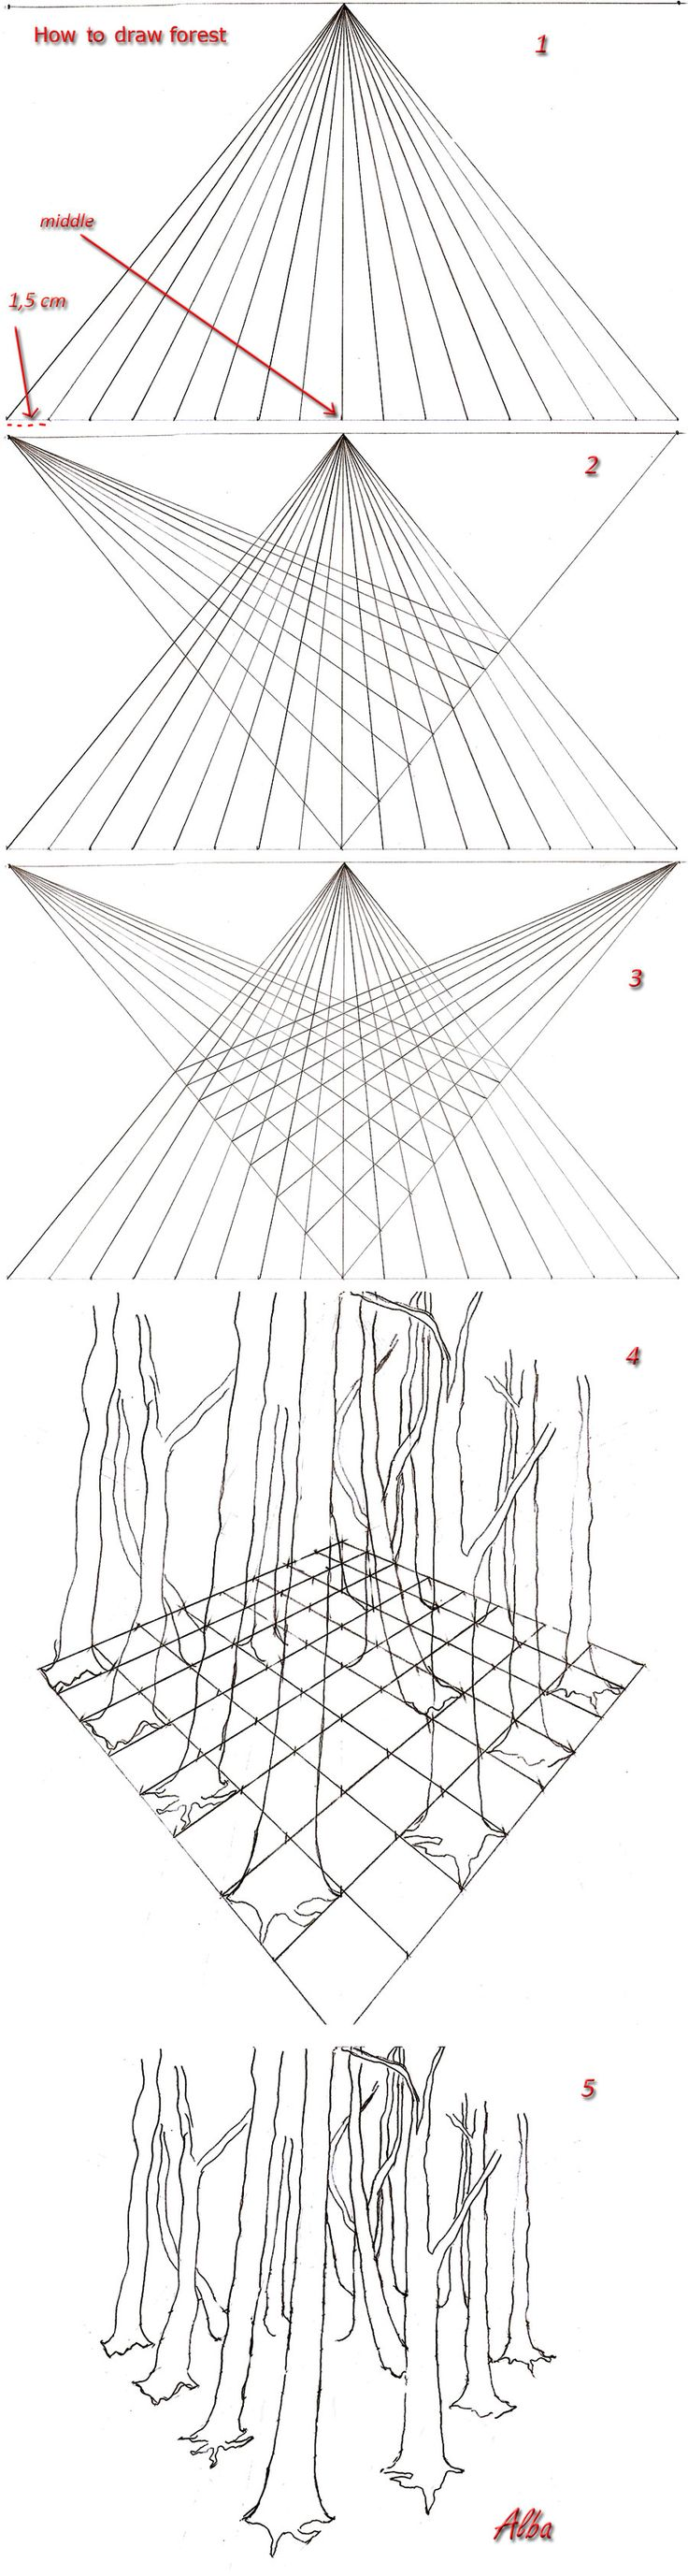 How to draw forest in perspective by ~lamorghana on deviantART